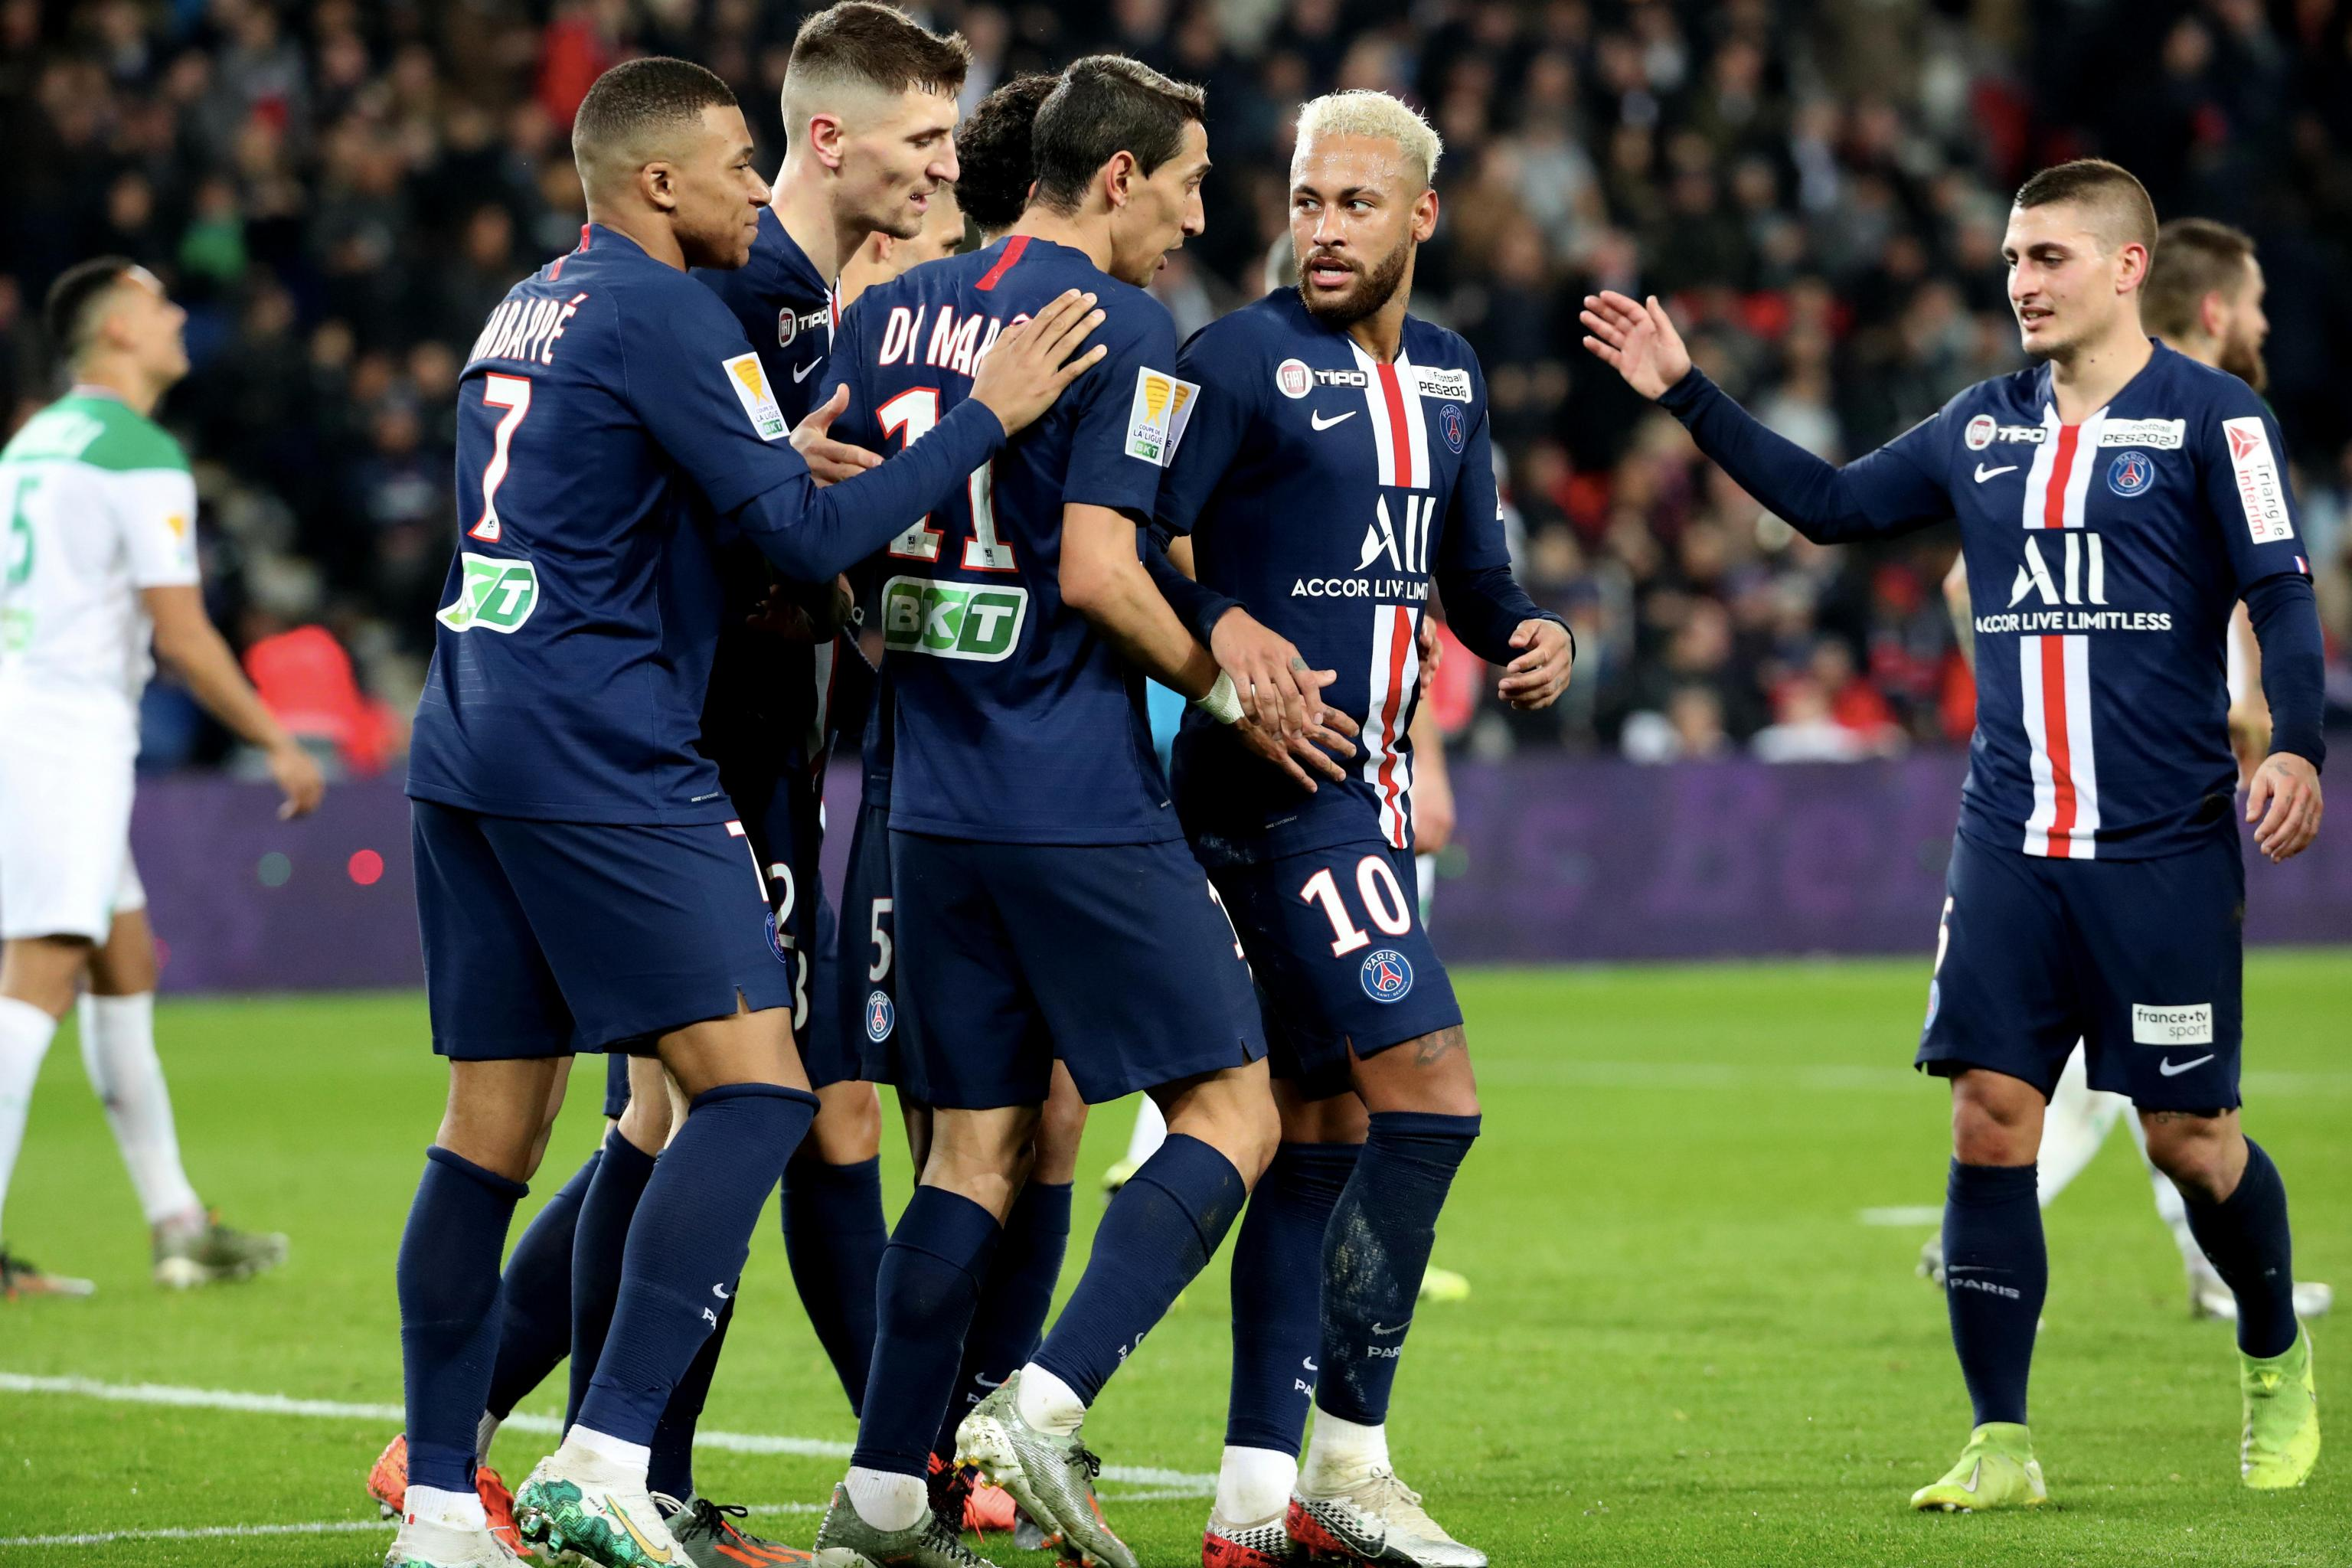 Marco Verratti Says Psg Boast 4 Of The Top 10 Players In World Football Bleacher Report Latest News Videos And Highlights